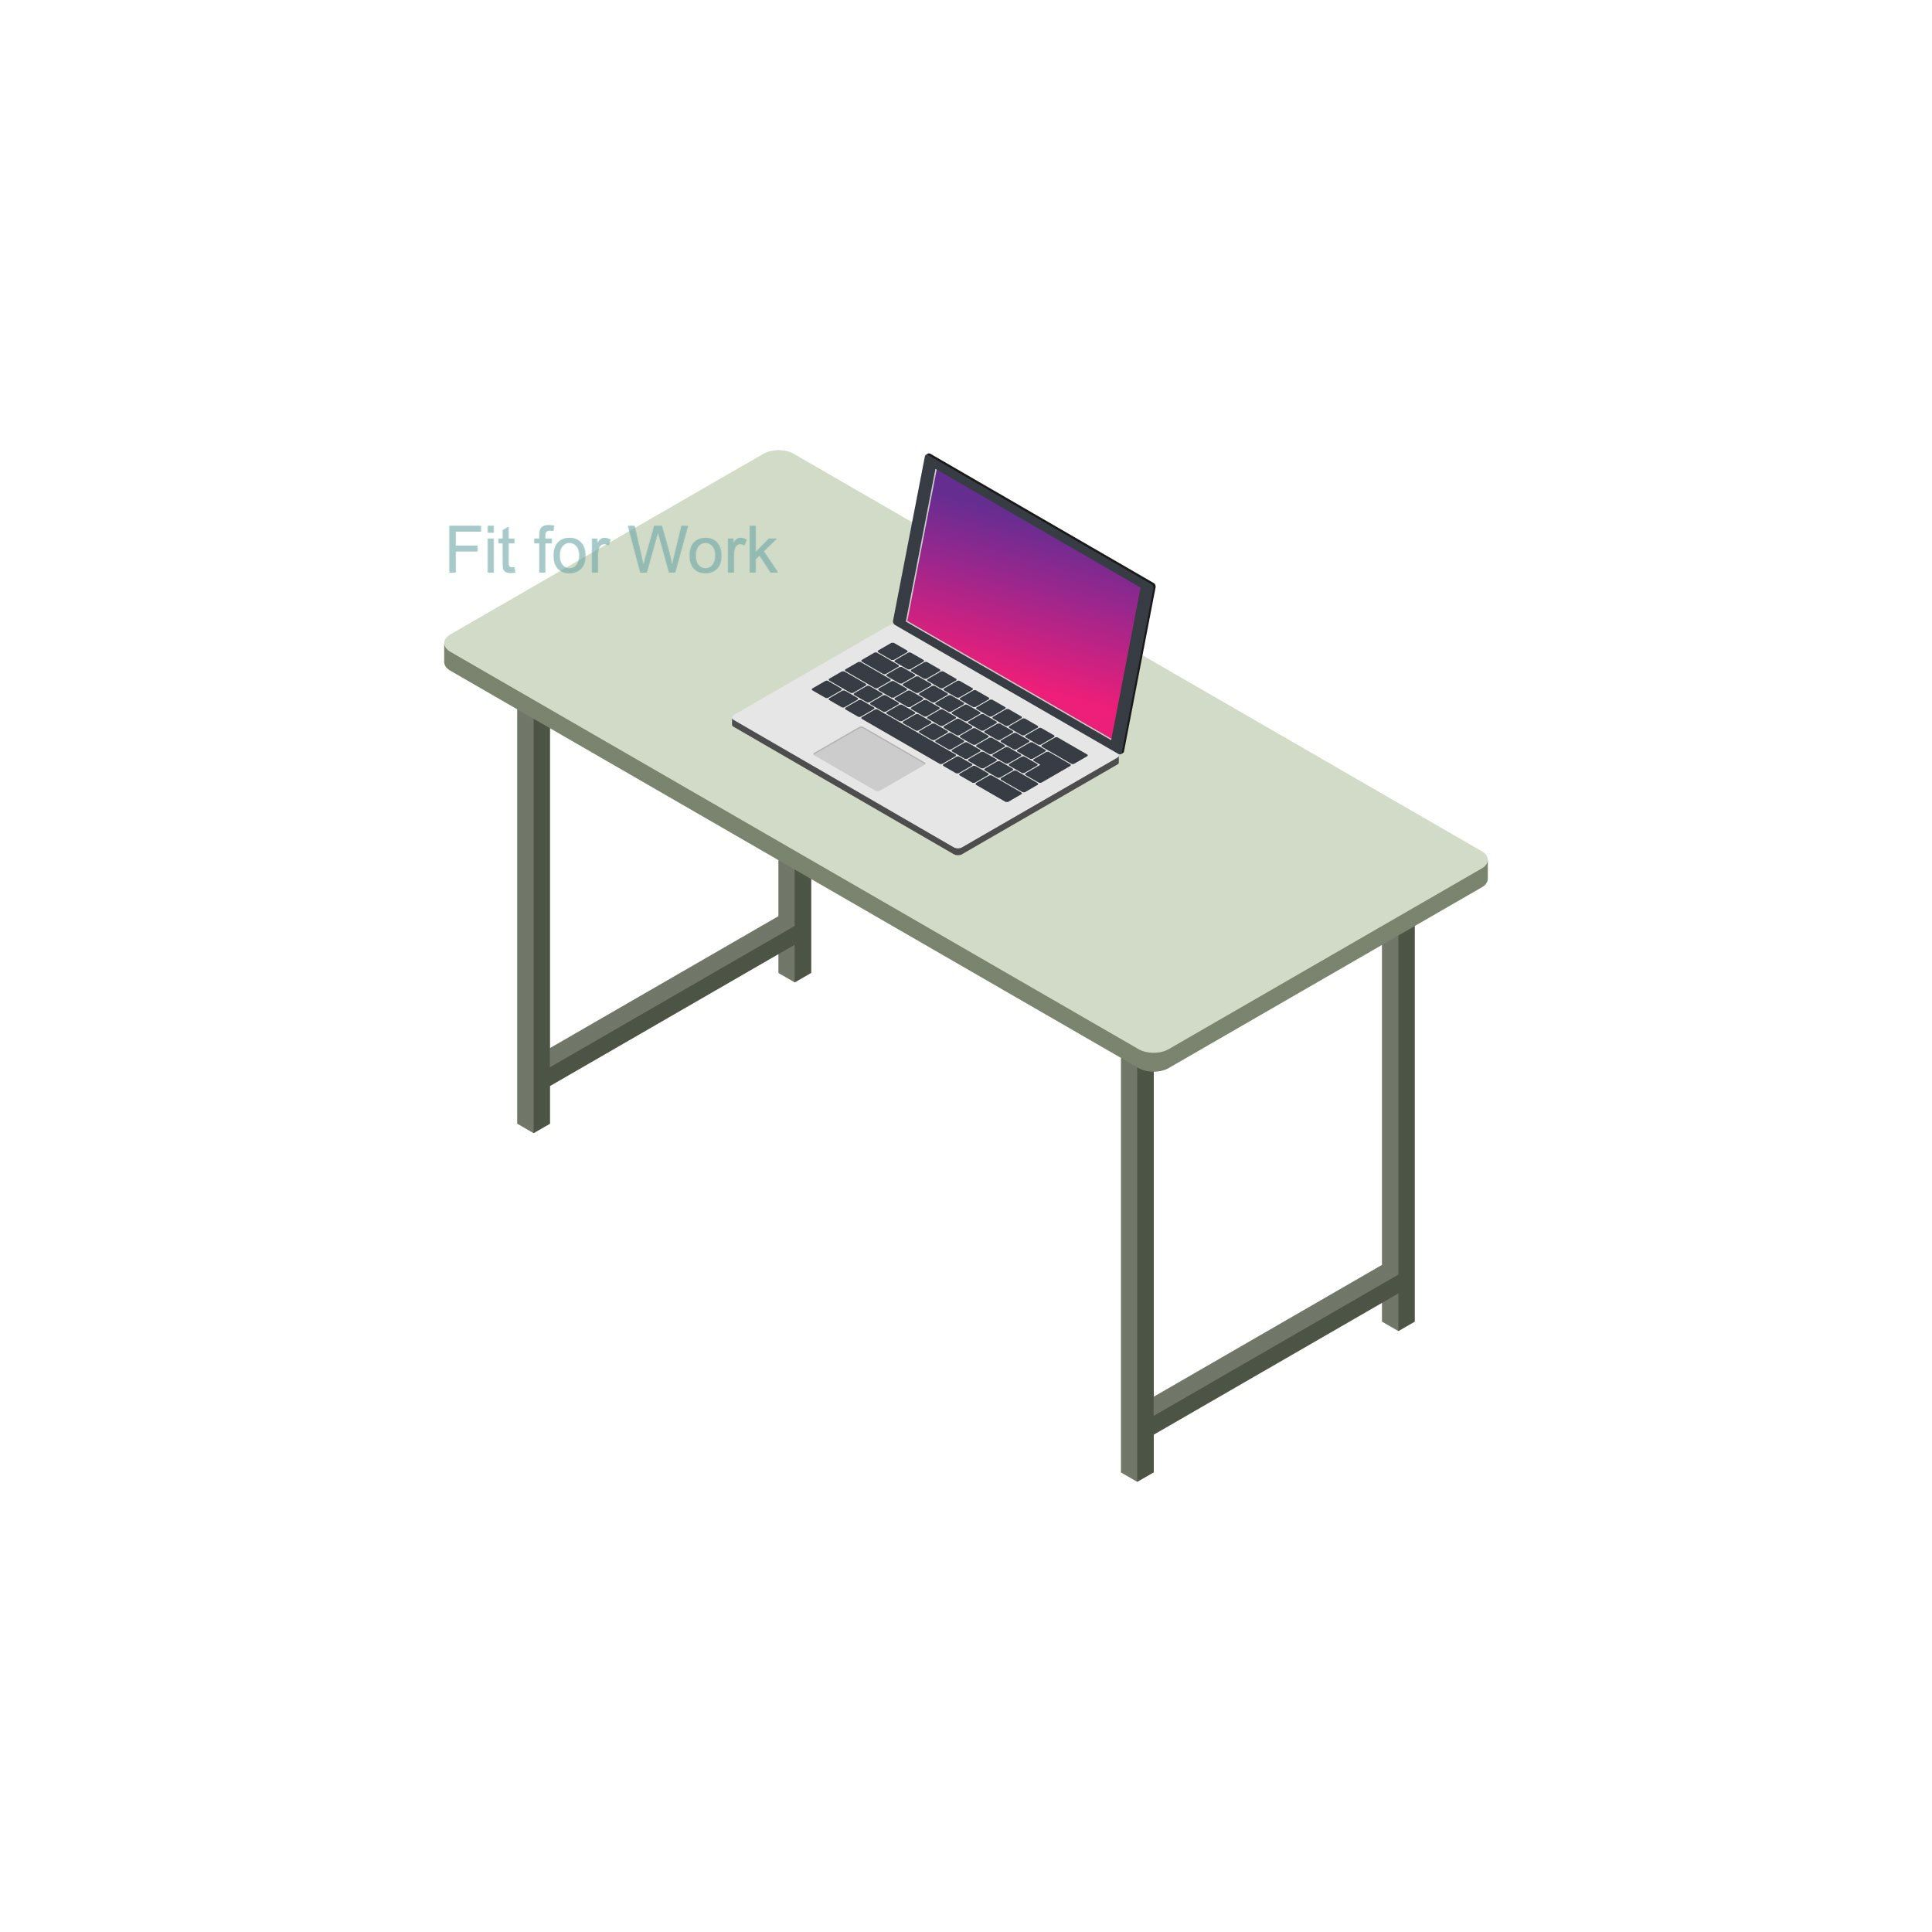 LAPTOP USE AND ERGONOMICS- SOME SIMPLE TIPS